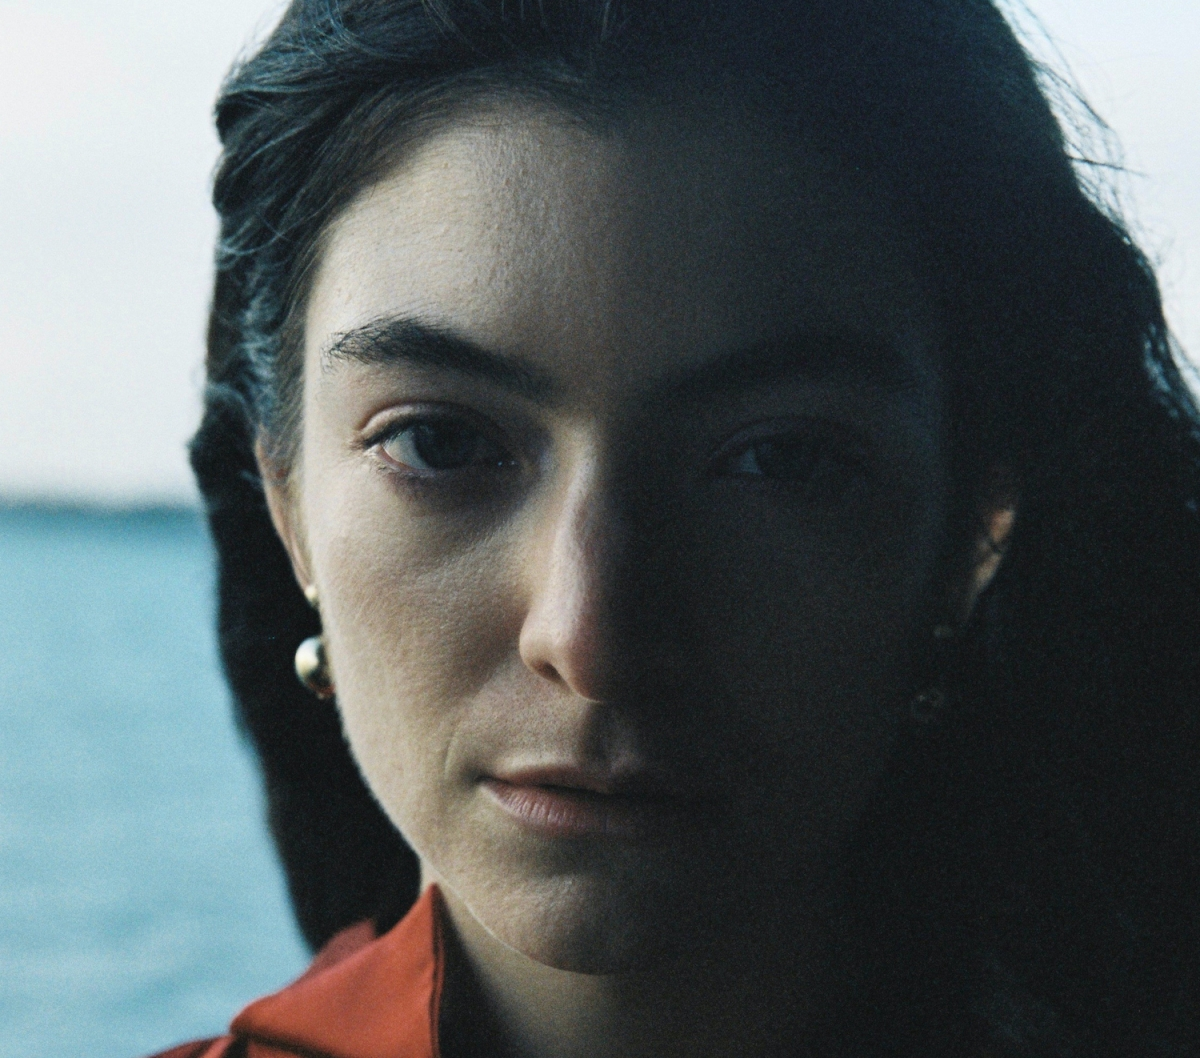 """Lorde unveils new track """"Stoned at the Nail Salon"""""""